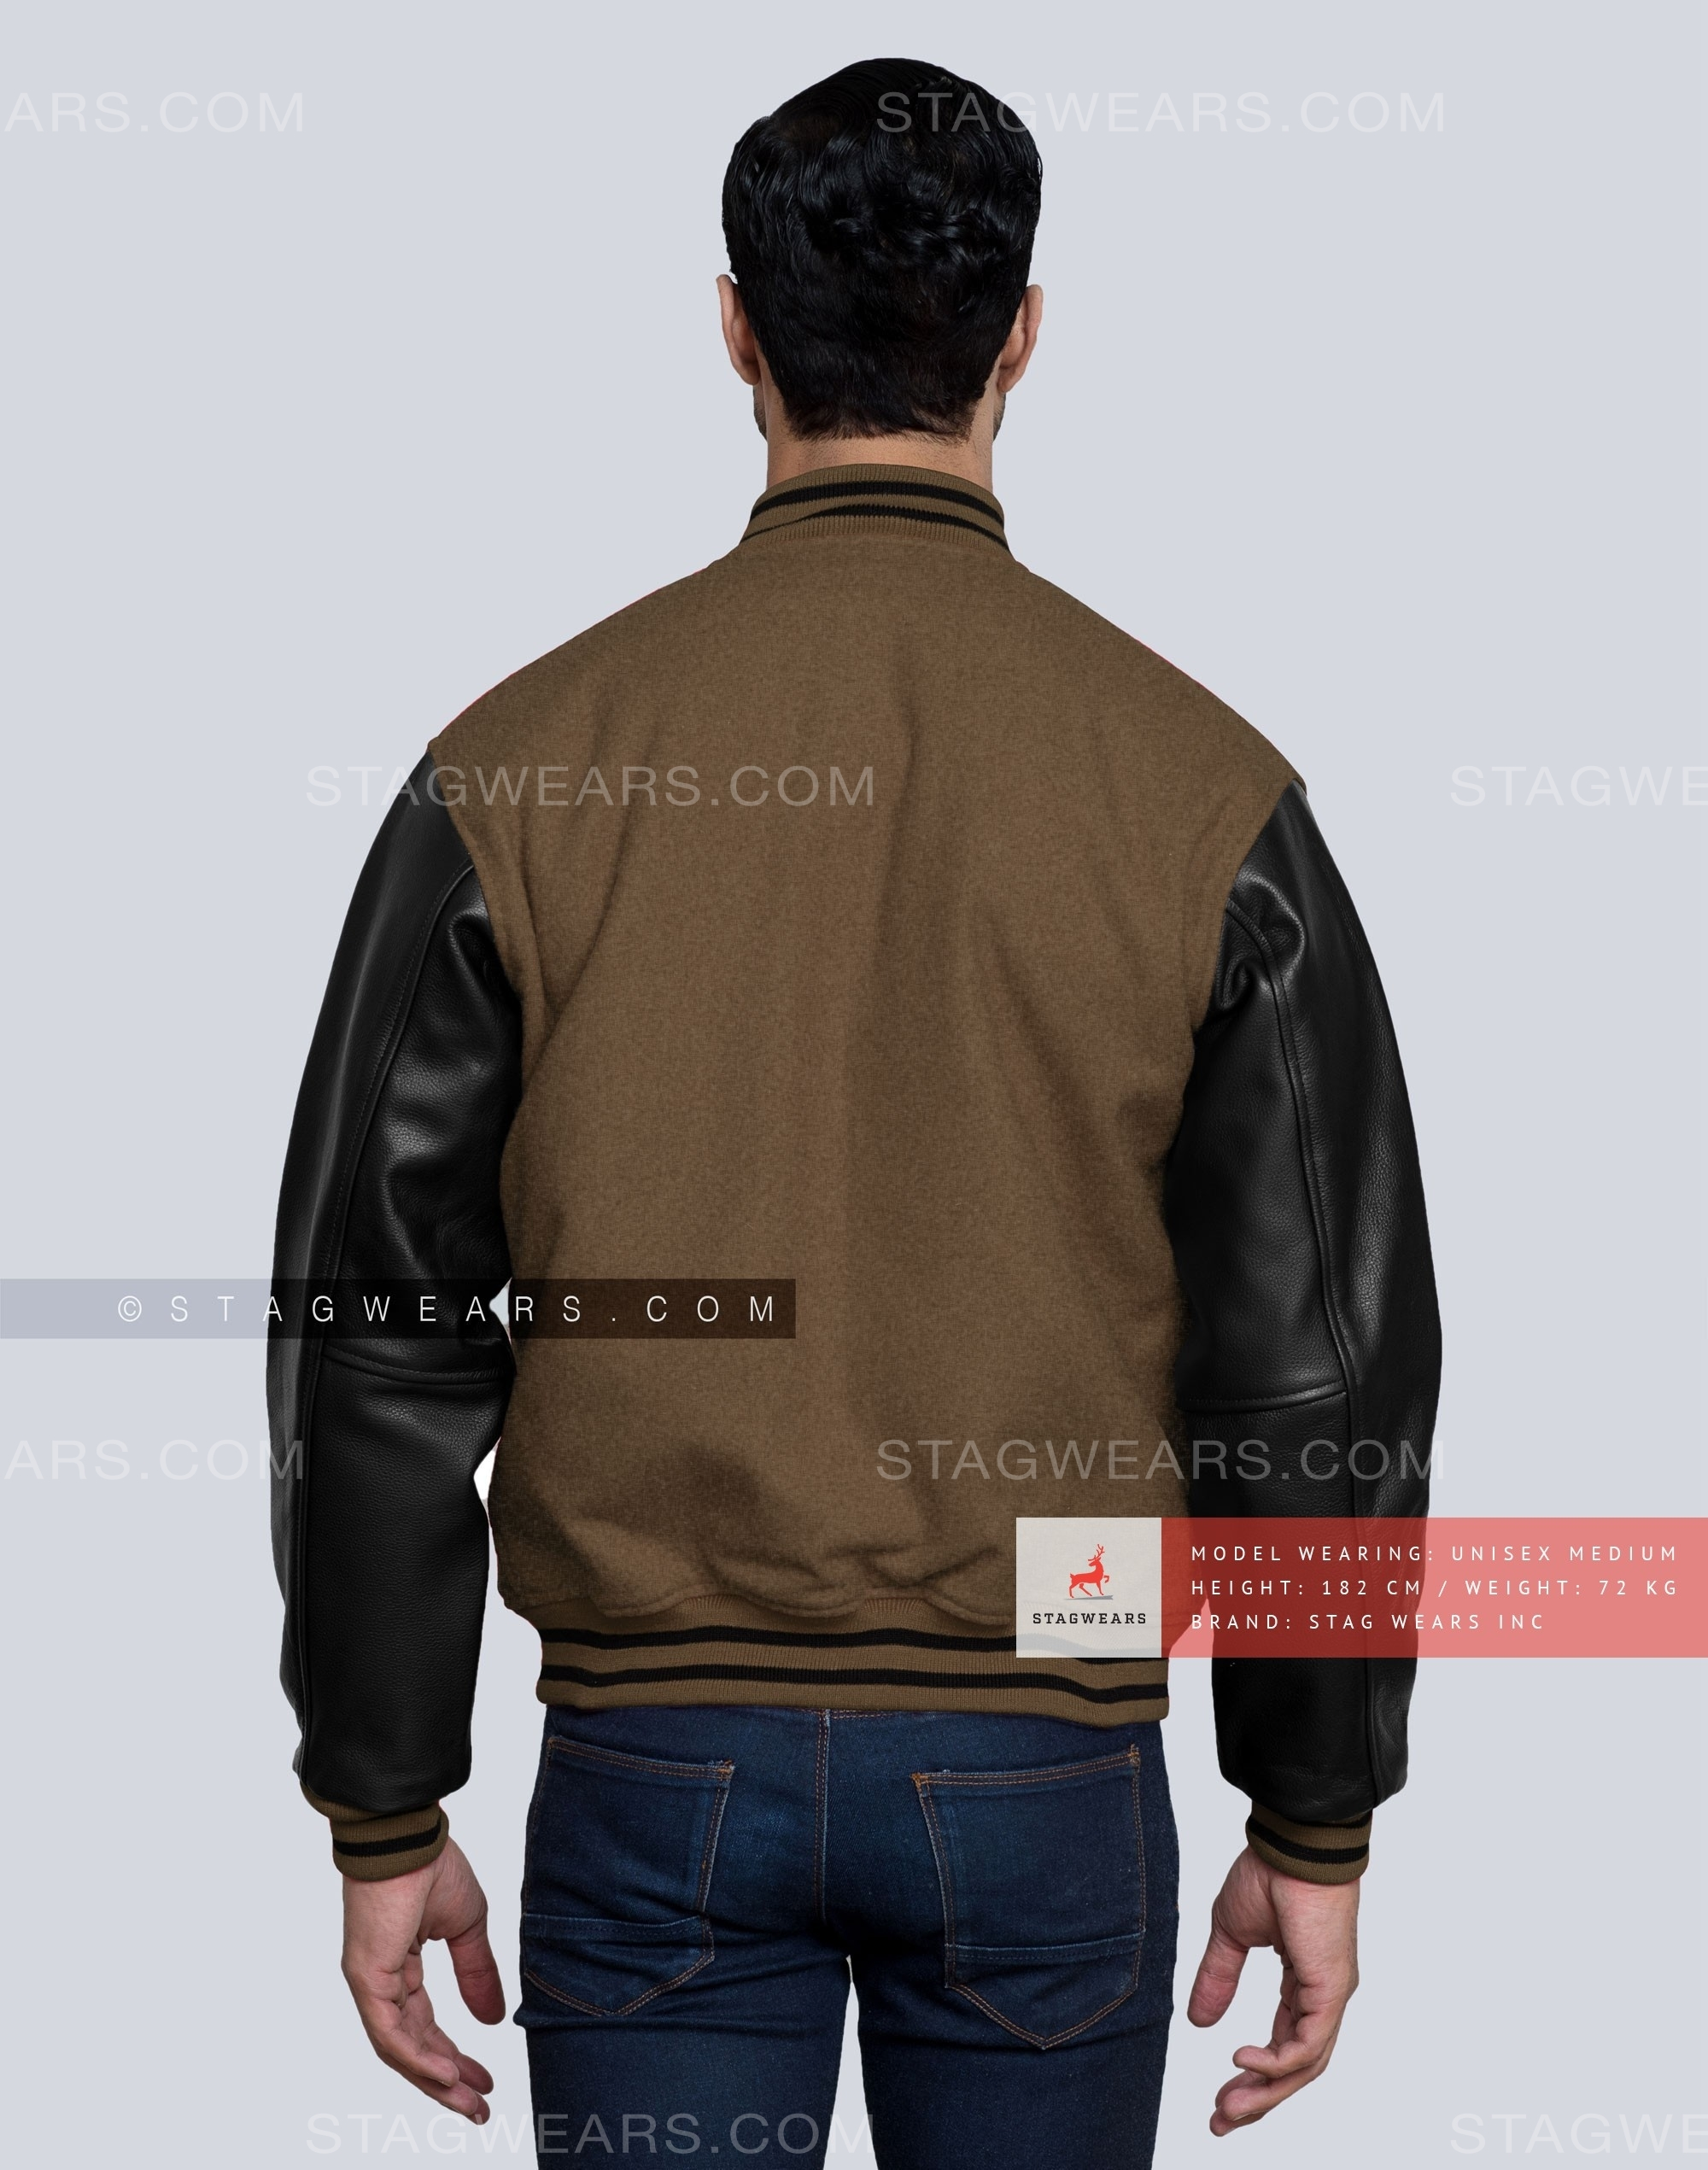 c093582a2 Brown Custom Letterman Jacket for the Modern and Trending Man!